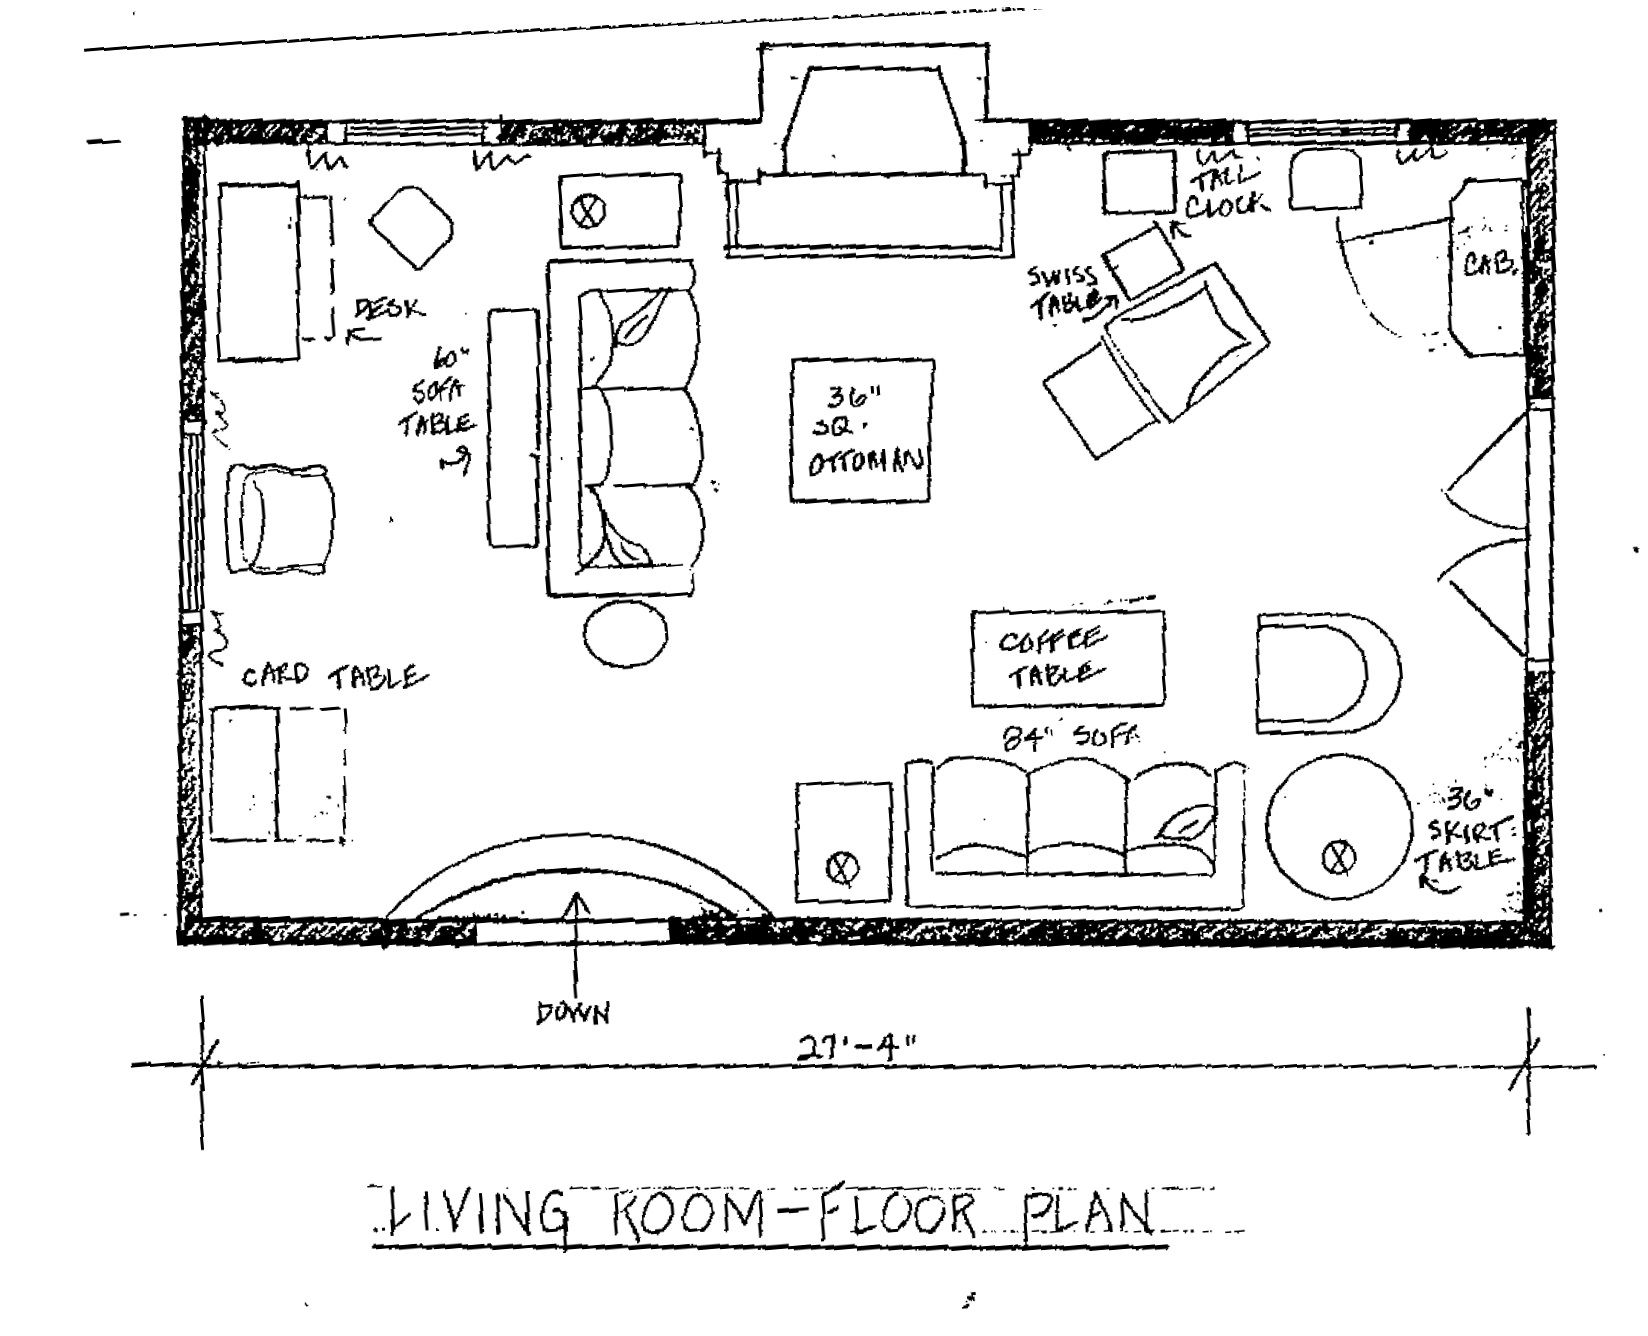 Dining Room Layout Planner Exquisite Decoration Layout Of A Living Room Floor Plans Livingroom Layout Living Room Layout Planner